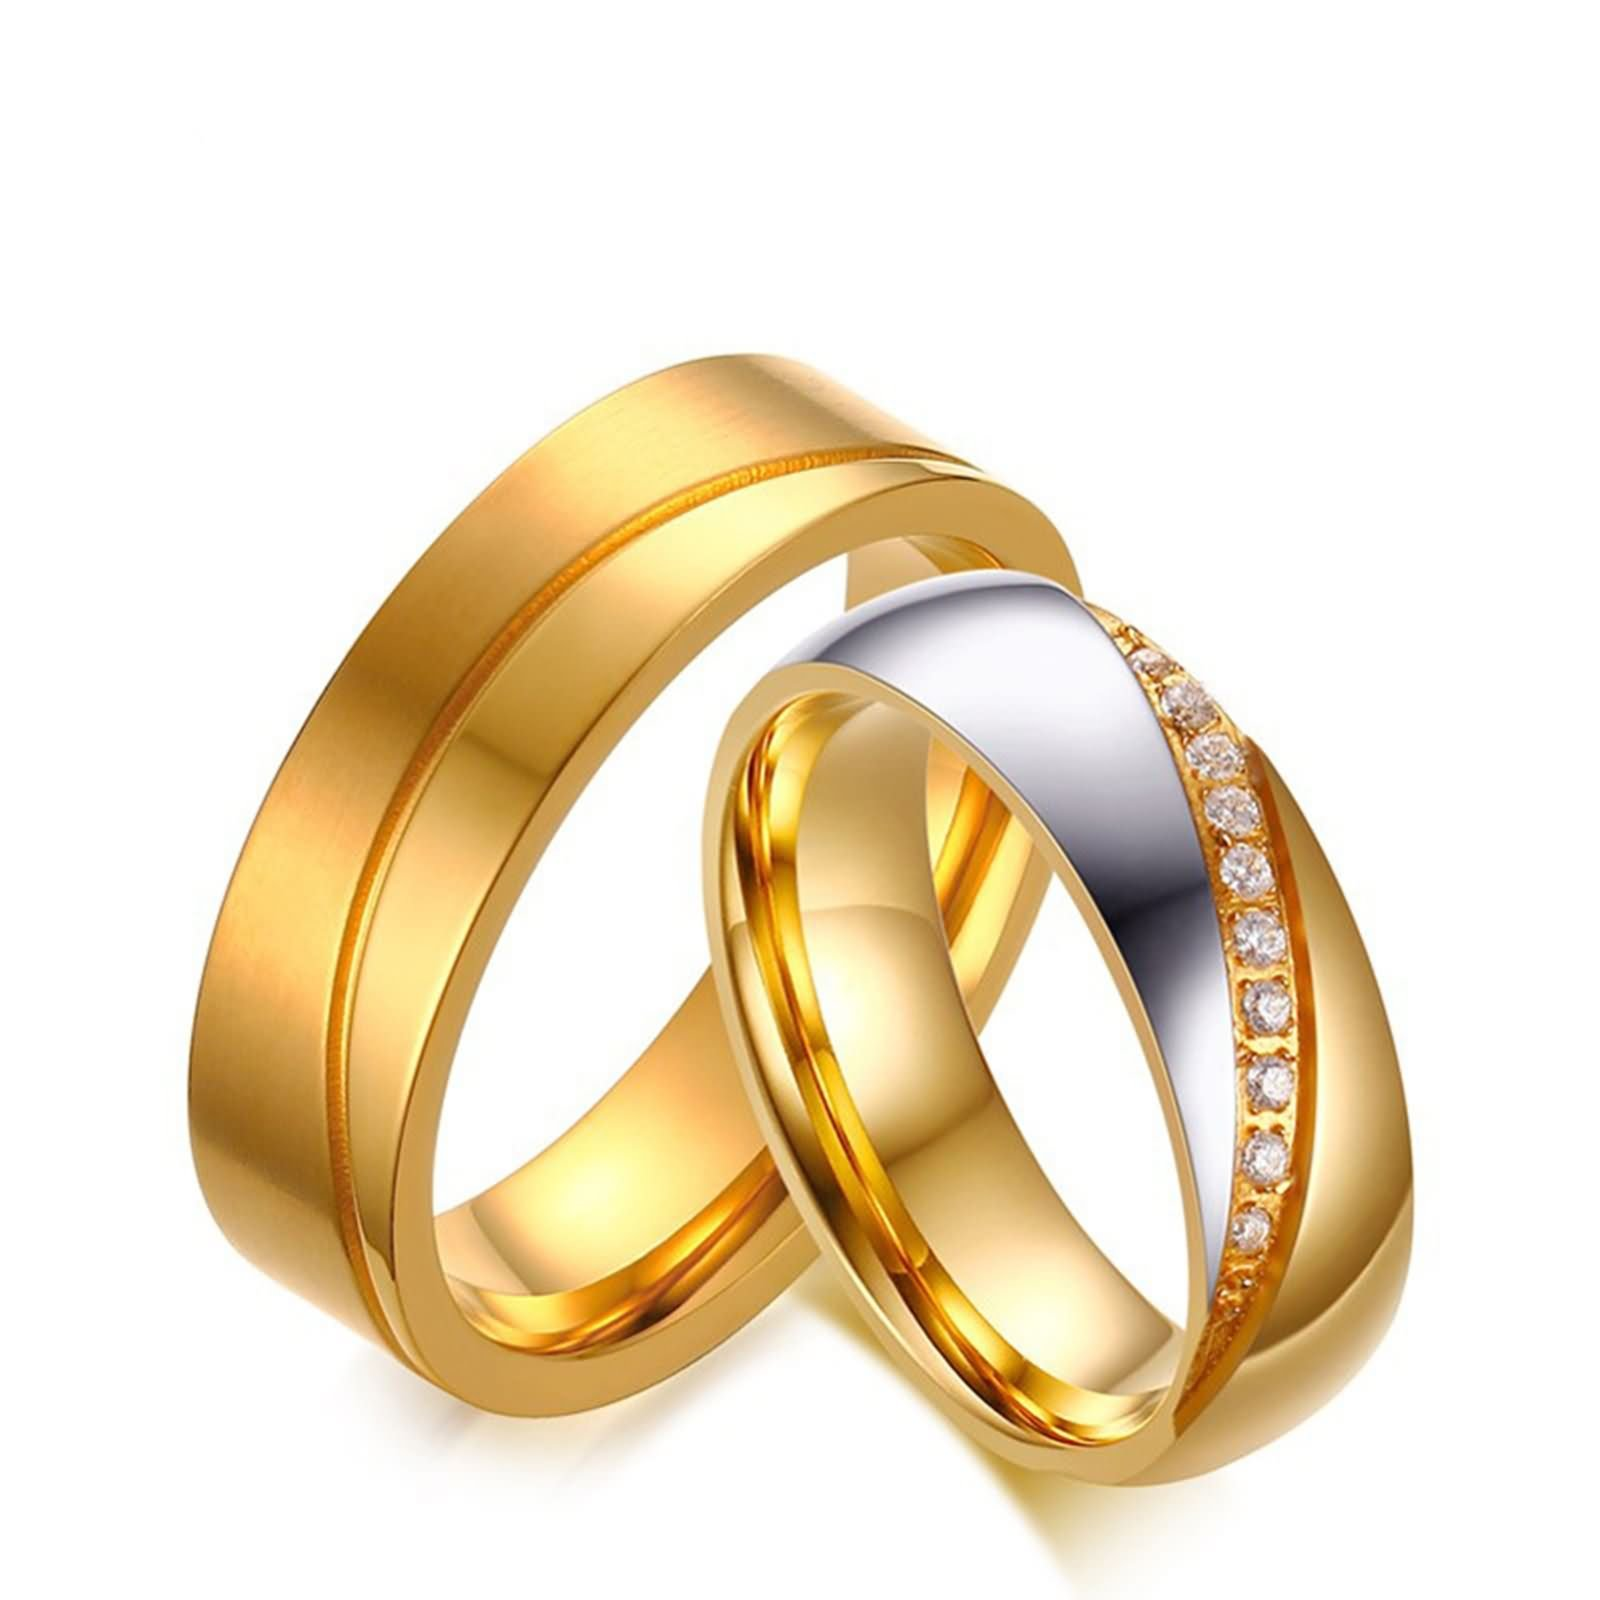 Beydodo Matching Ring Sets for Couples Stainless Steel Ring Engagement Round CZ Women Size 6 & Men Size 12